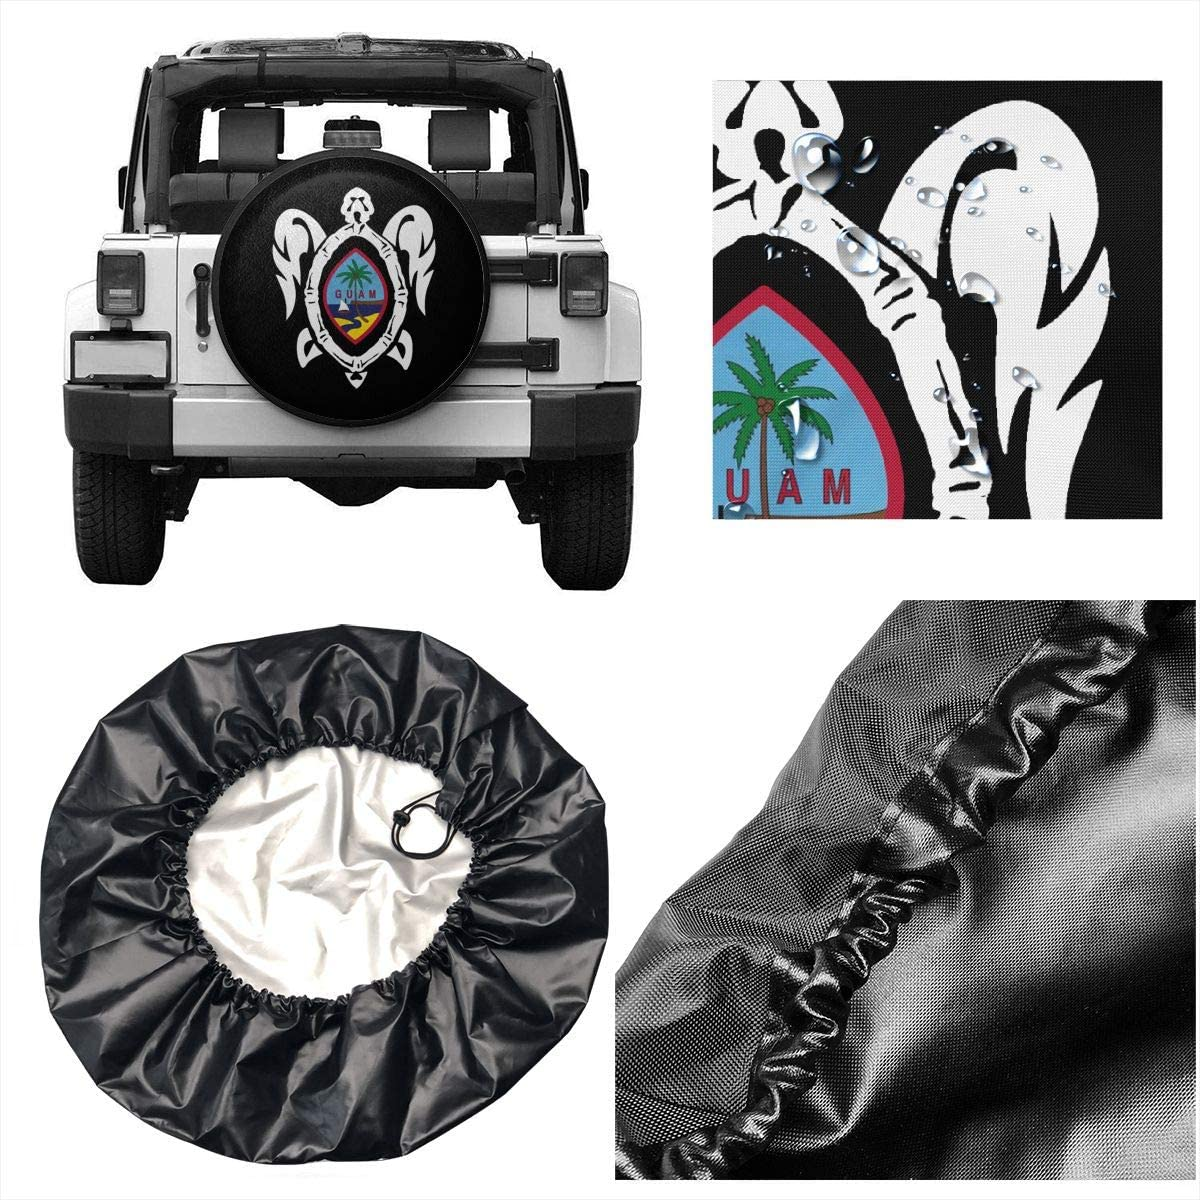 SUV Truck and Many Vehicle Size 14 15 16 17 ZP-CCYF Guam Flag Turtle Universal Fit Tire Covers Waterproof Dust-Proof Spare Tire Cover for Jeep,Trailer RV